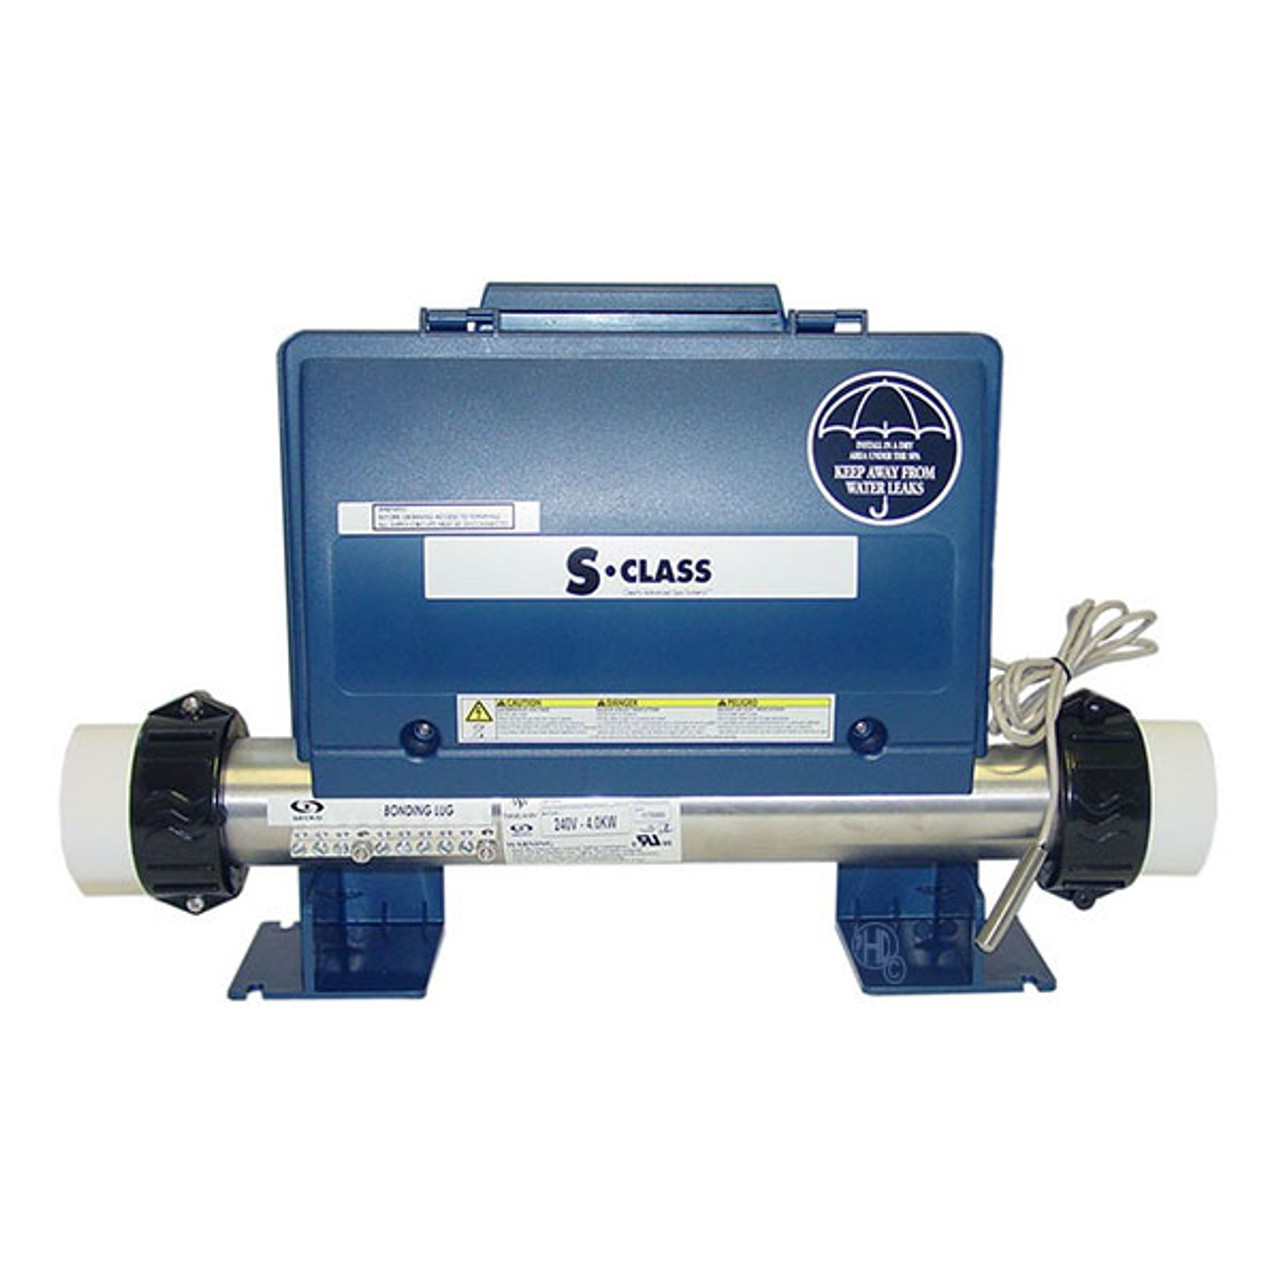 Gecko S-Cl Pack operates 1 pump, circ and ozone (0202-205212) on